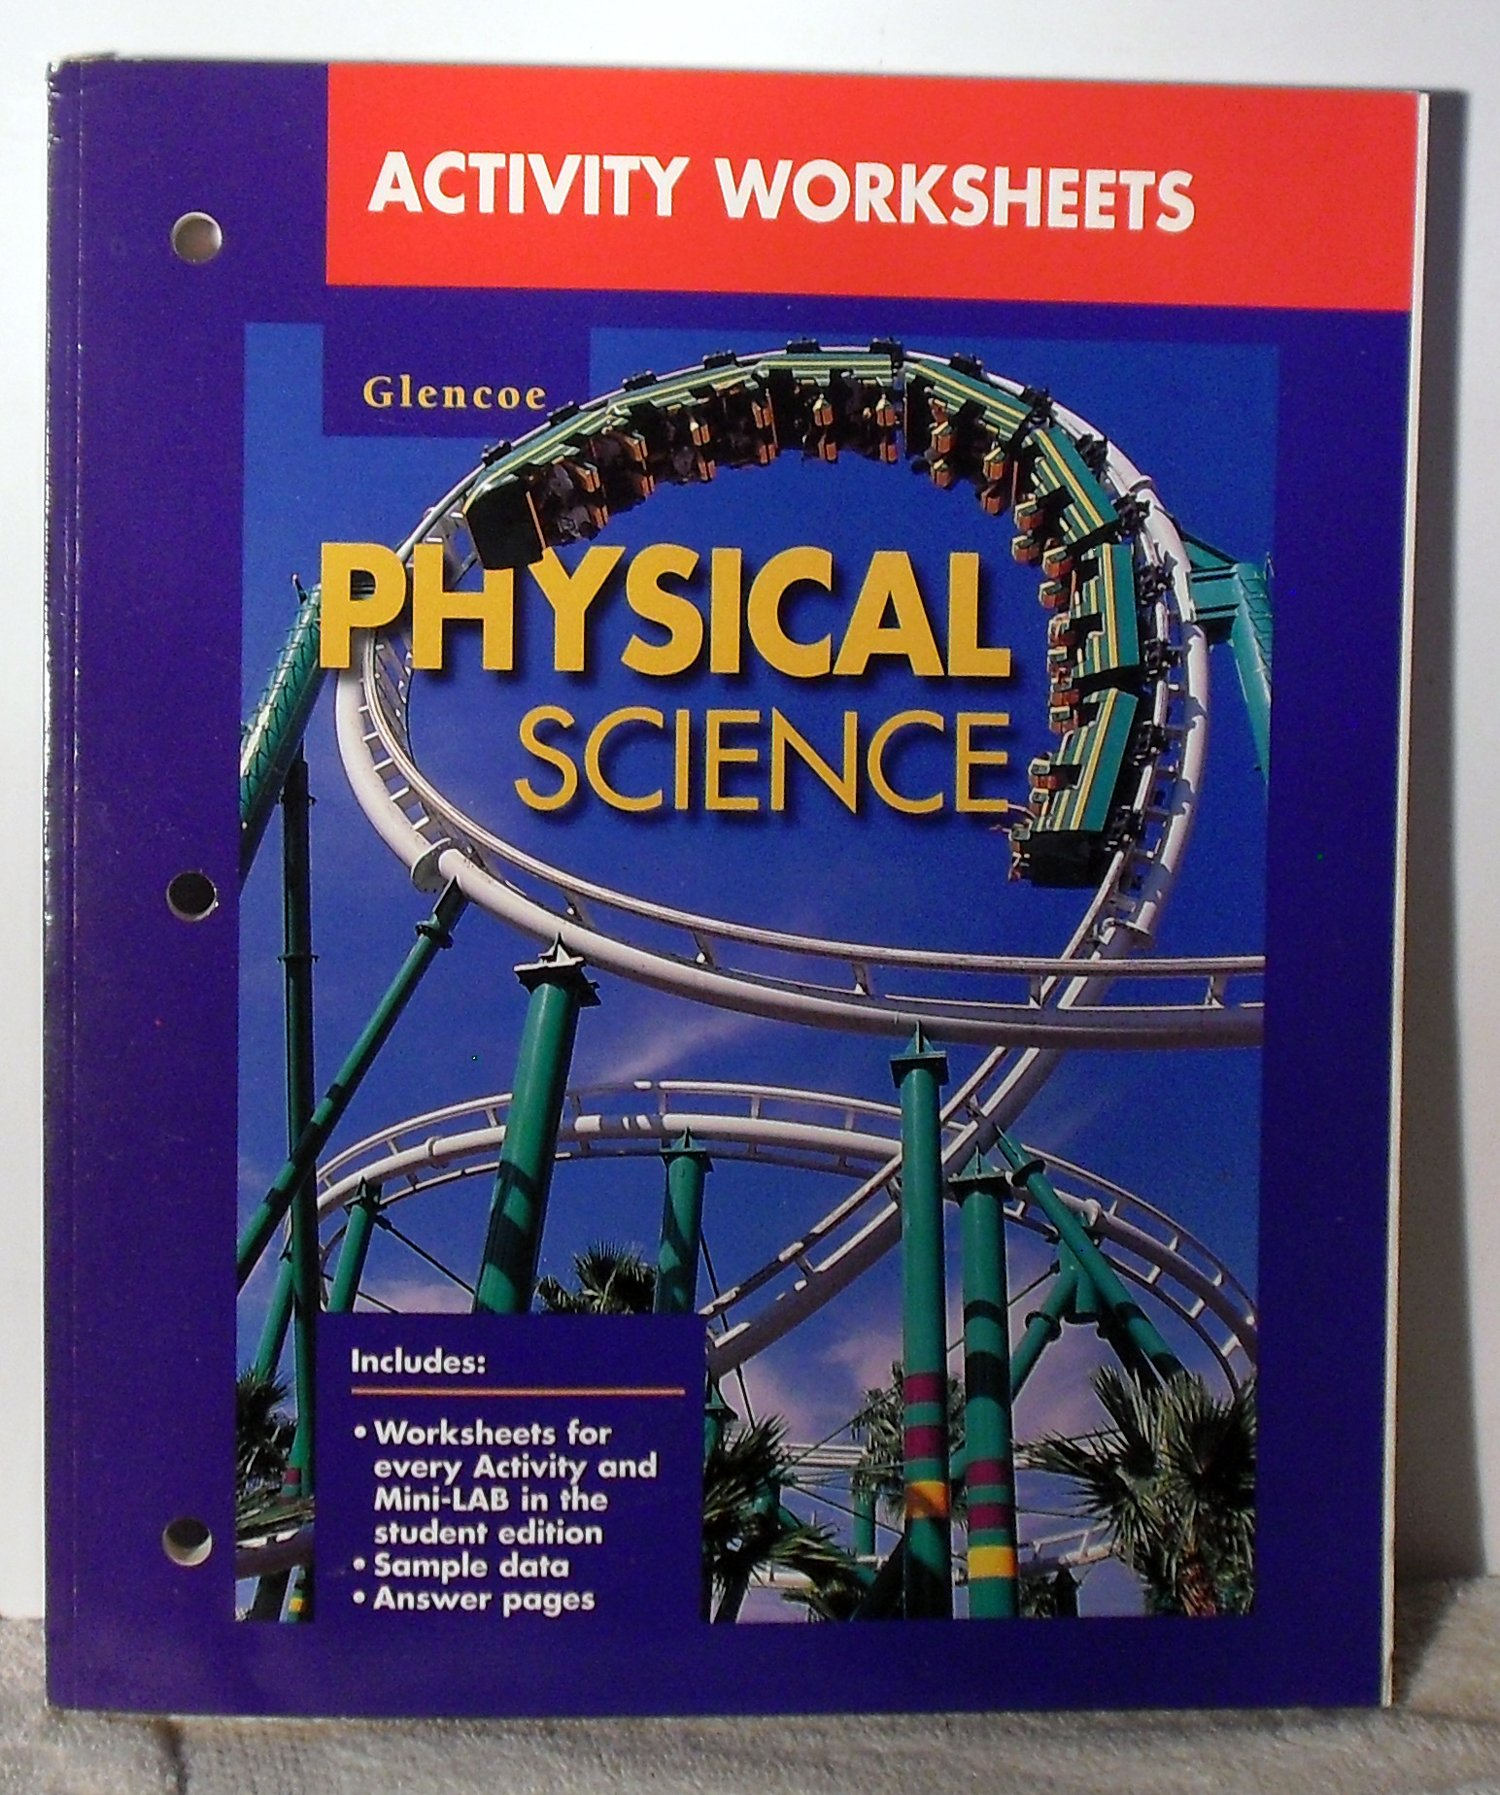 worksheet Glencoe Physical Science Worksheets activity worksheets glencoe physical science glencoemcgraw hill 9780028278810 amazon com books